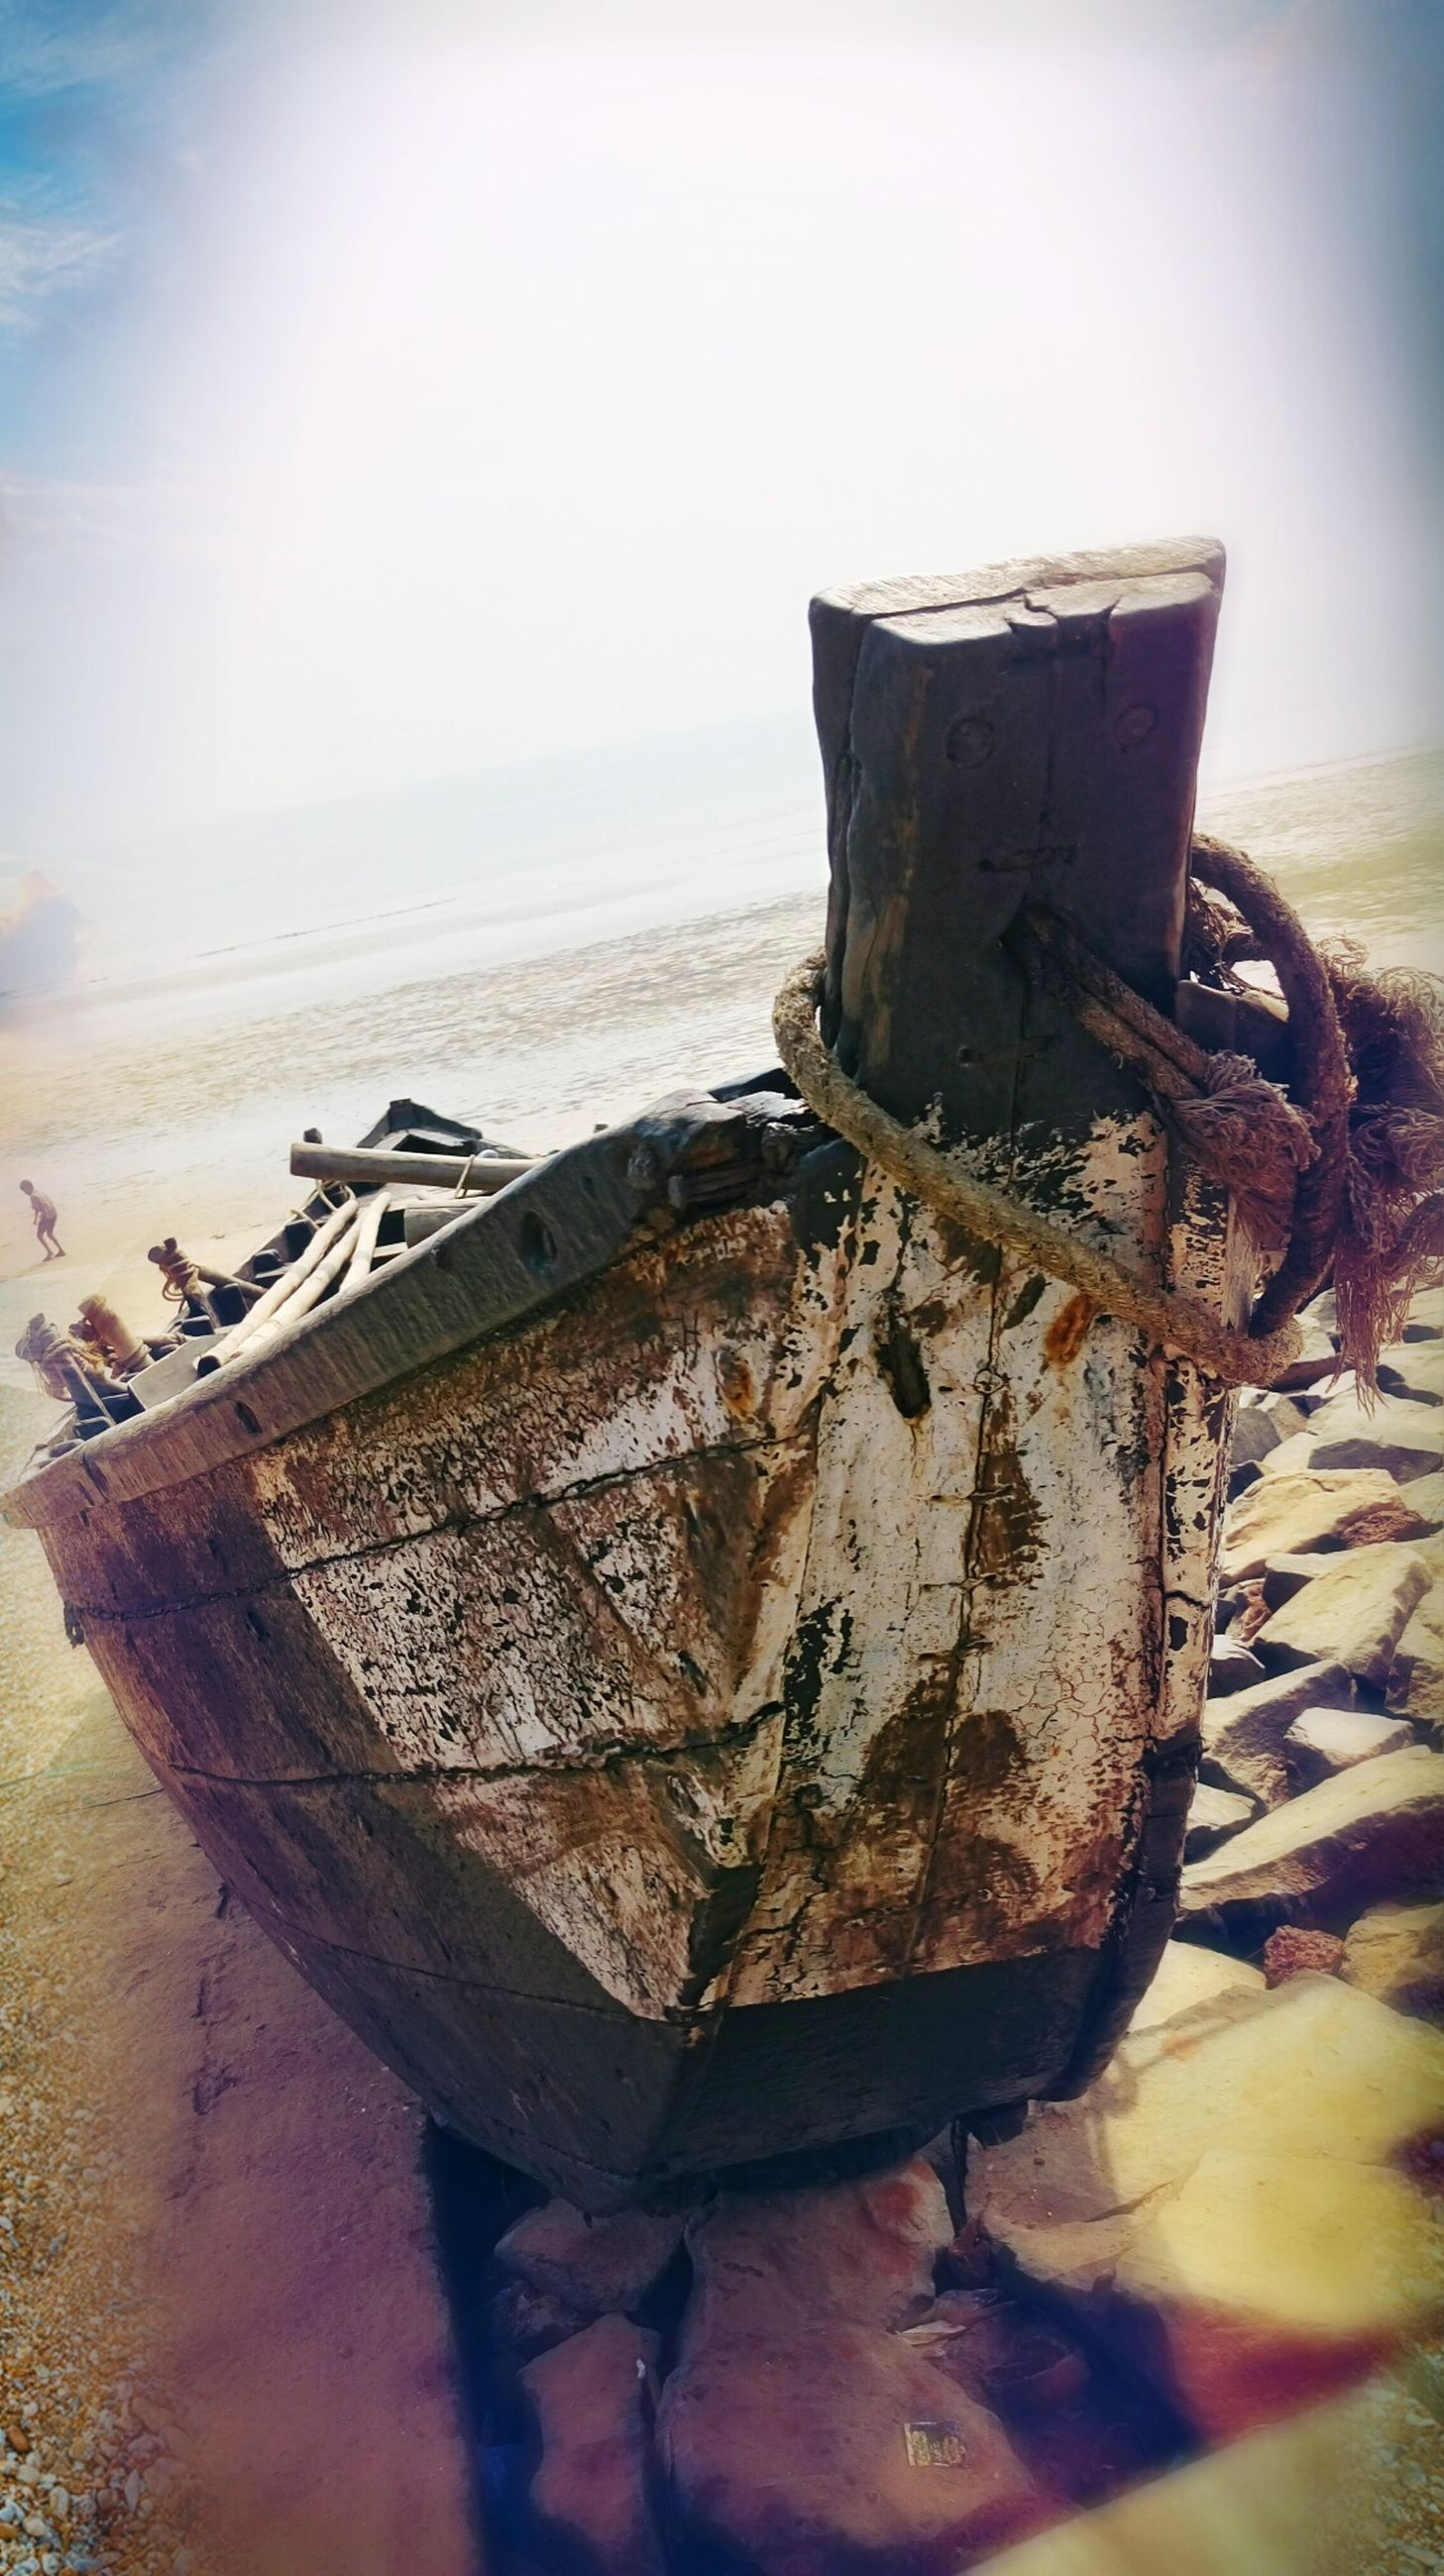 sea, beach, sky, horizon over water, water, nature, outdoors, sunlight, transportation, no people, day, mode of transport, nautical vessel, sand, scenics, tranquility, beauty in nature, rusty, close-up